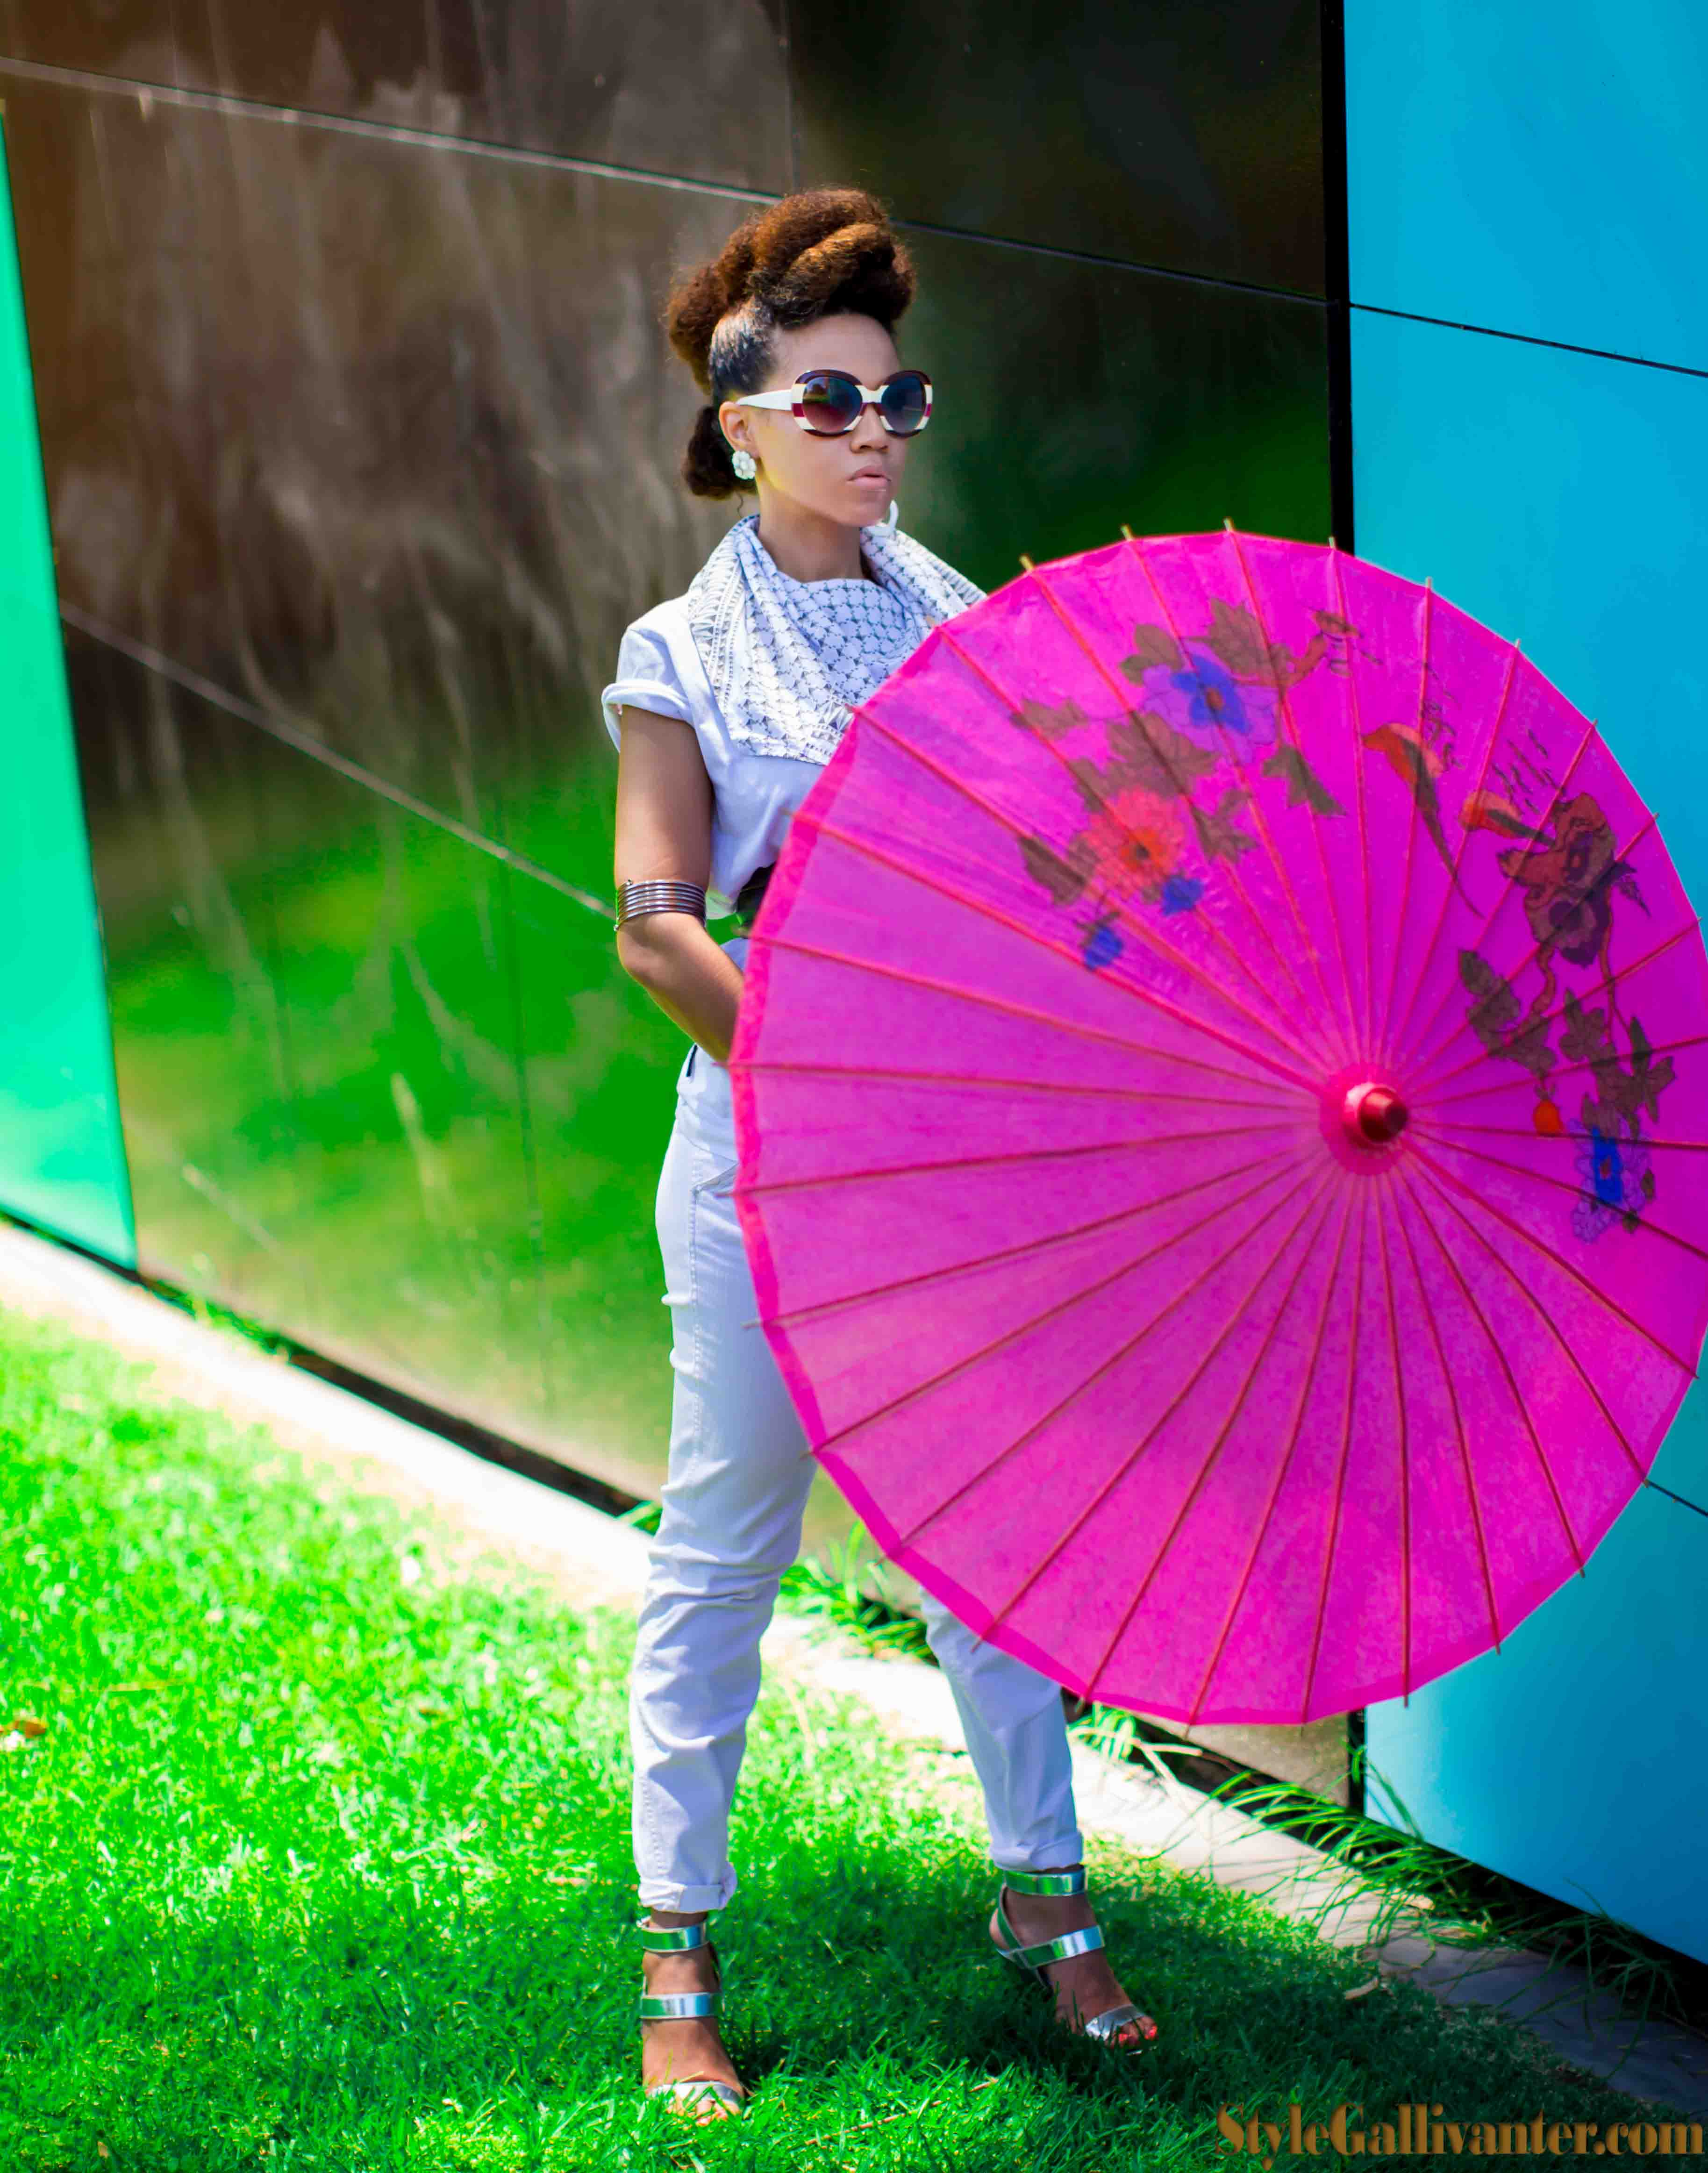 bicep-cuff_sunglass-trends-2014_sakhino_best-personal-stylist-melbourne_best-colour-blocking_best-online-fashion-magazine_cover-girl-editorial_unique-fashion-bloggers-melbourne-3